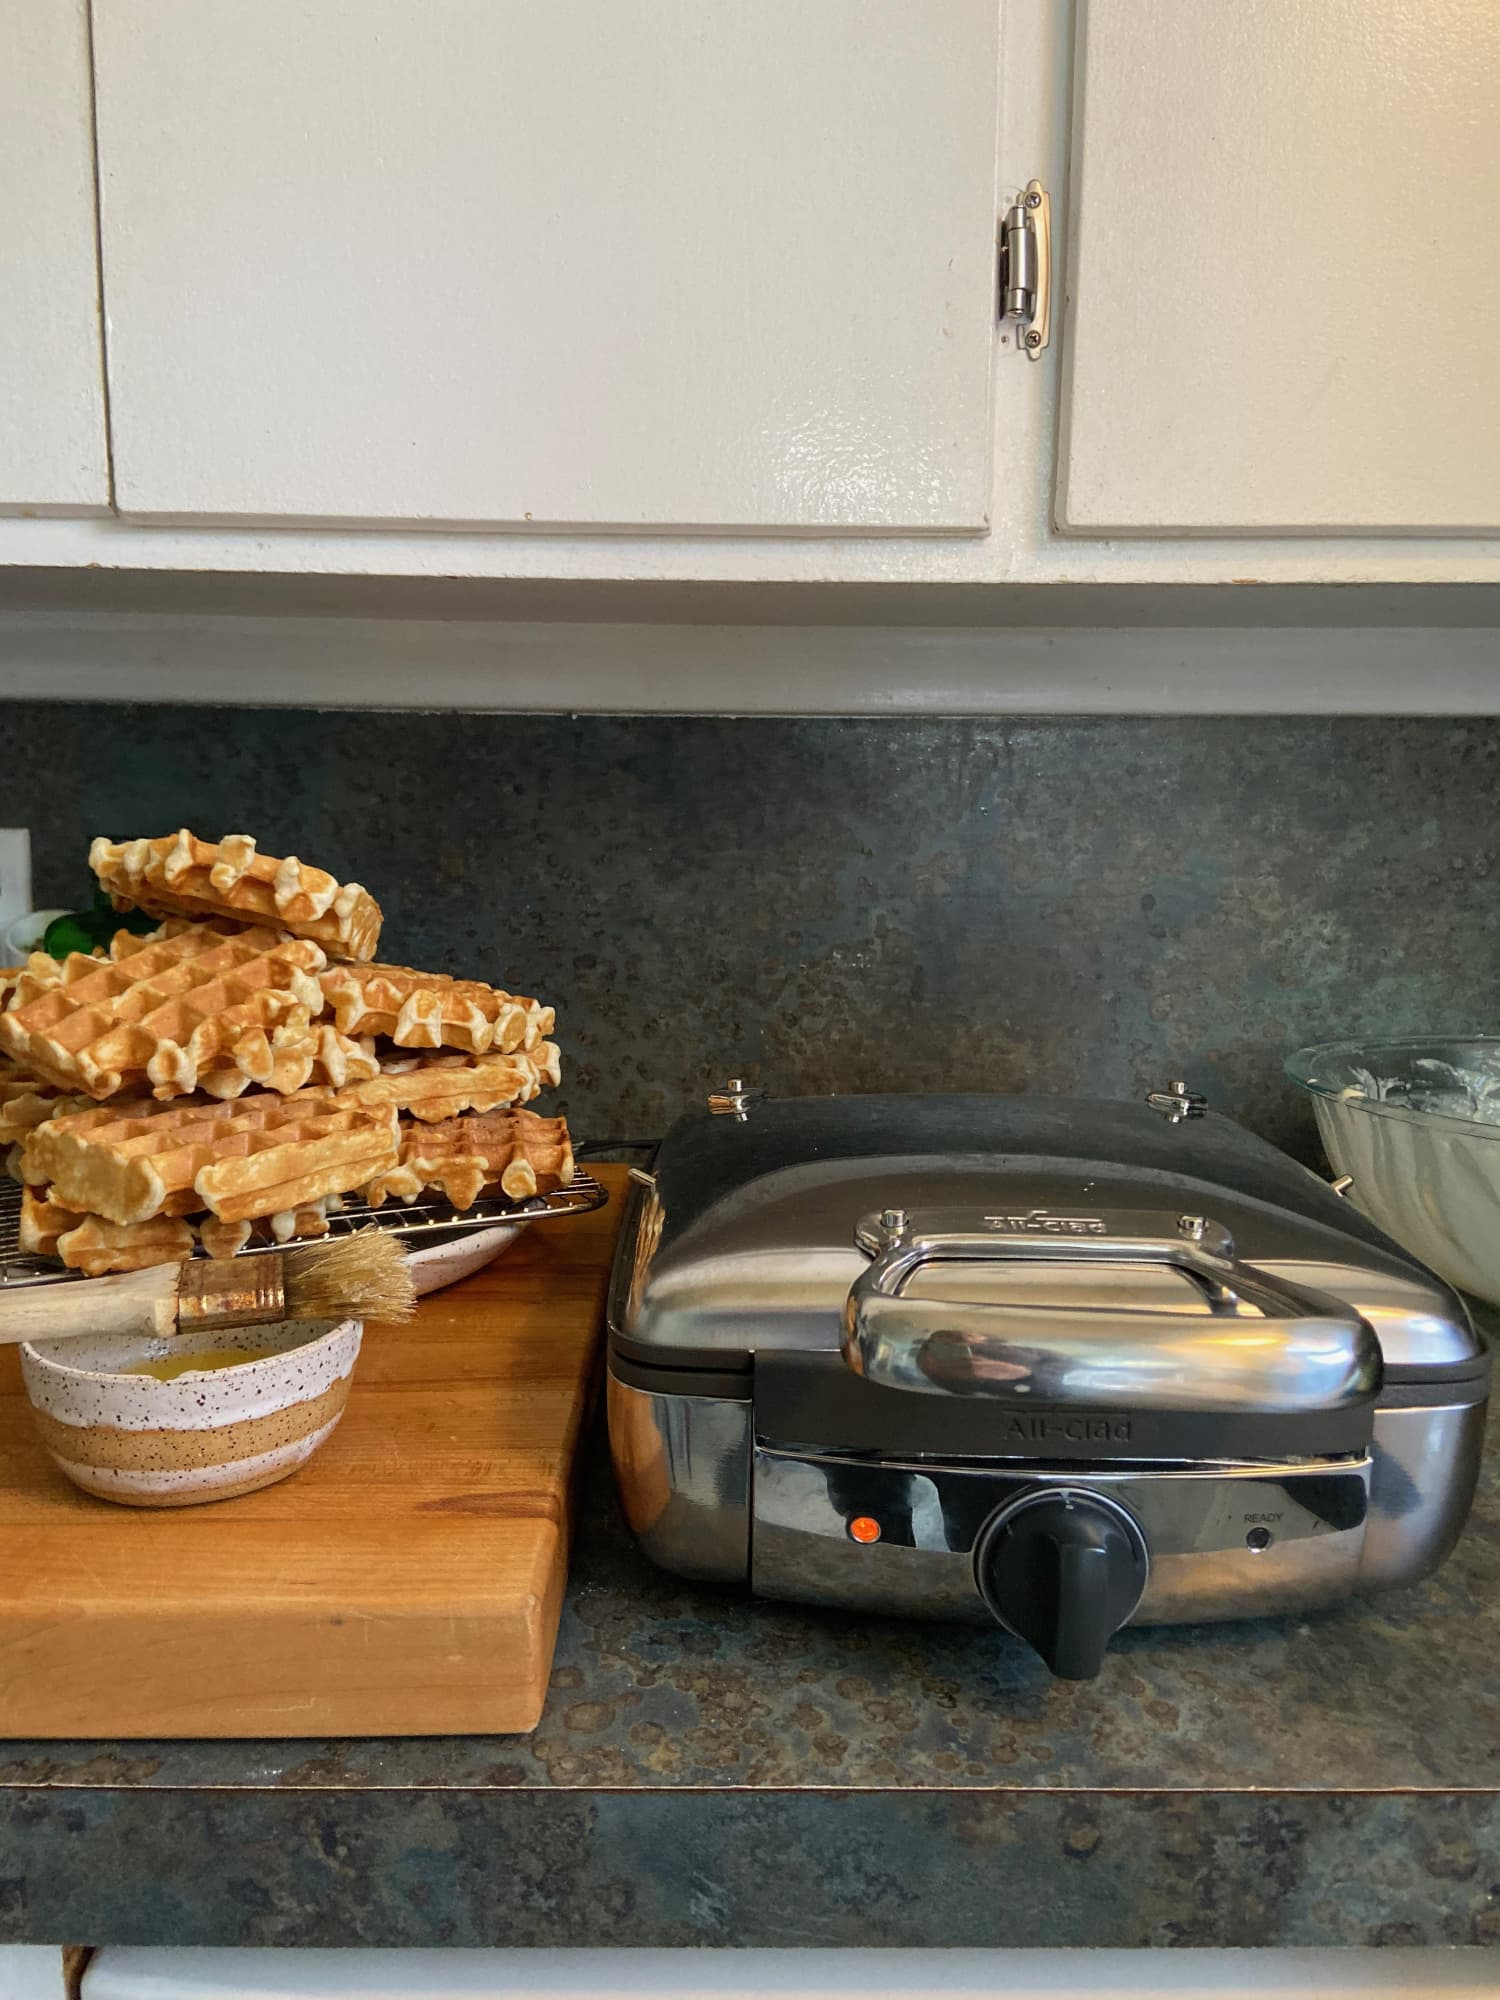 I Got a $200 Waffle Maker and Have Zero Regrets